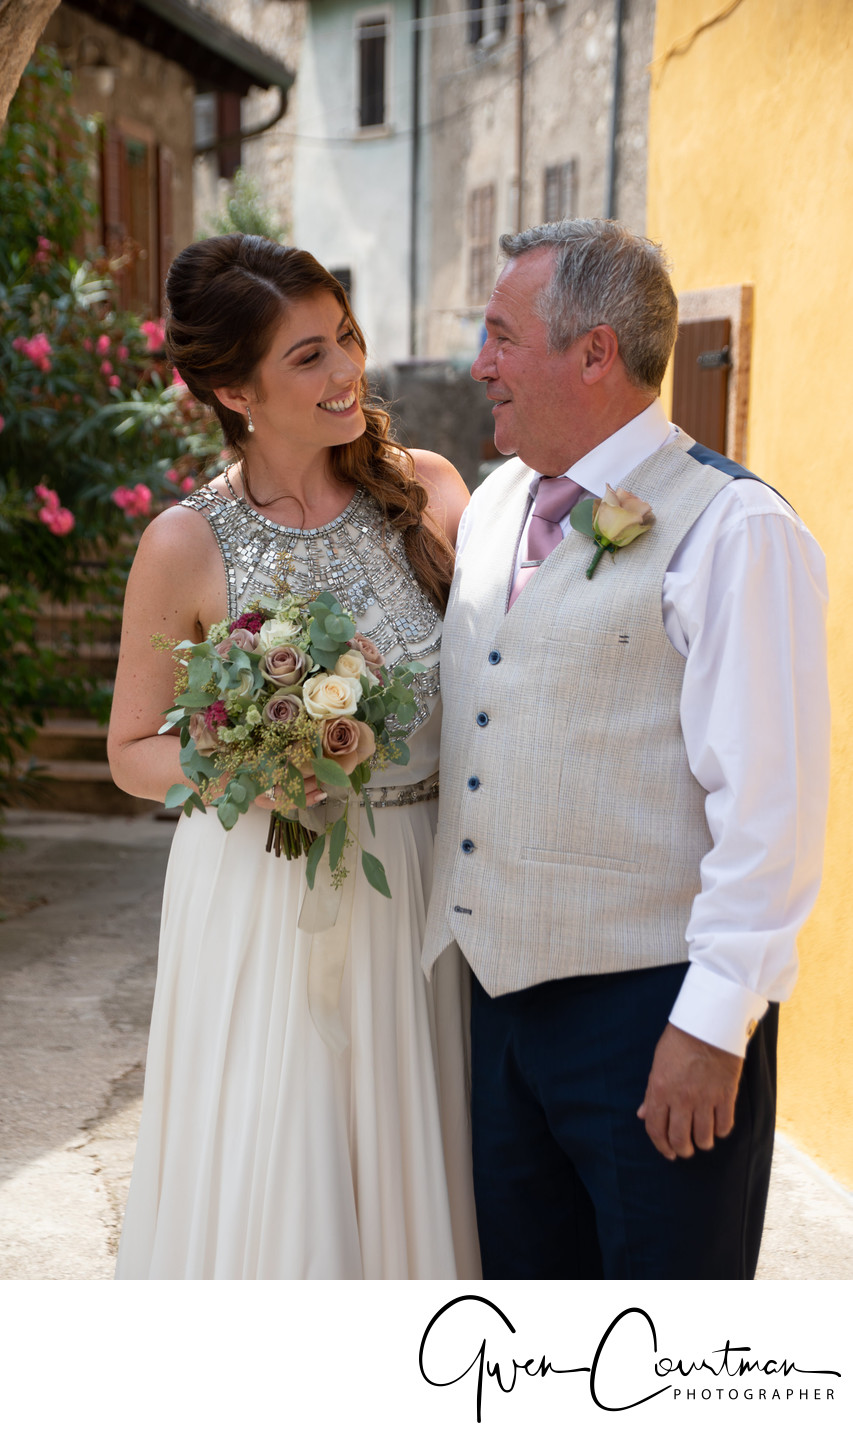 Gemma and Dad, Malcesine, Italy